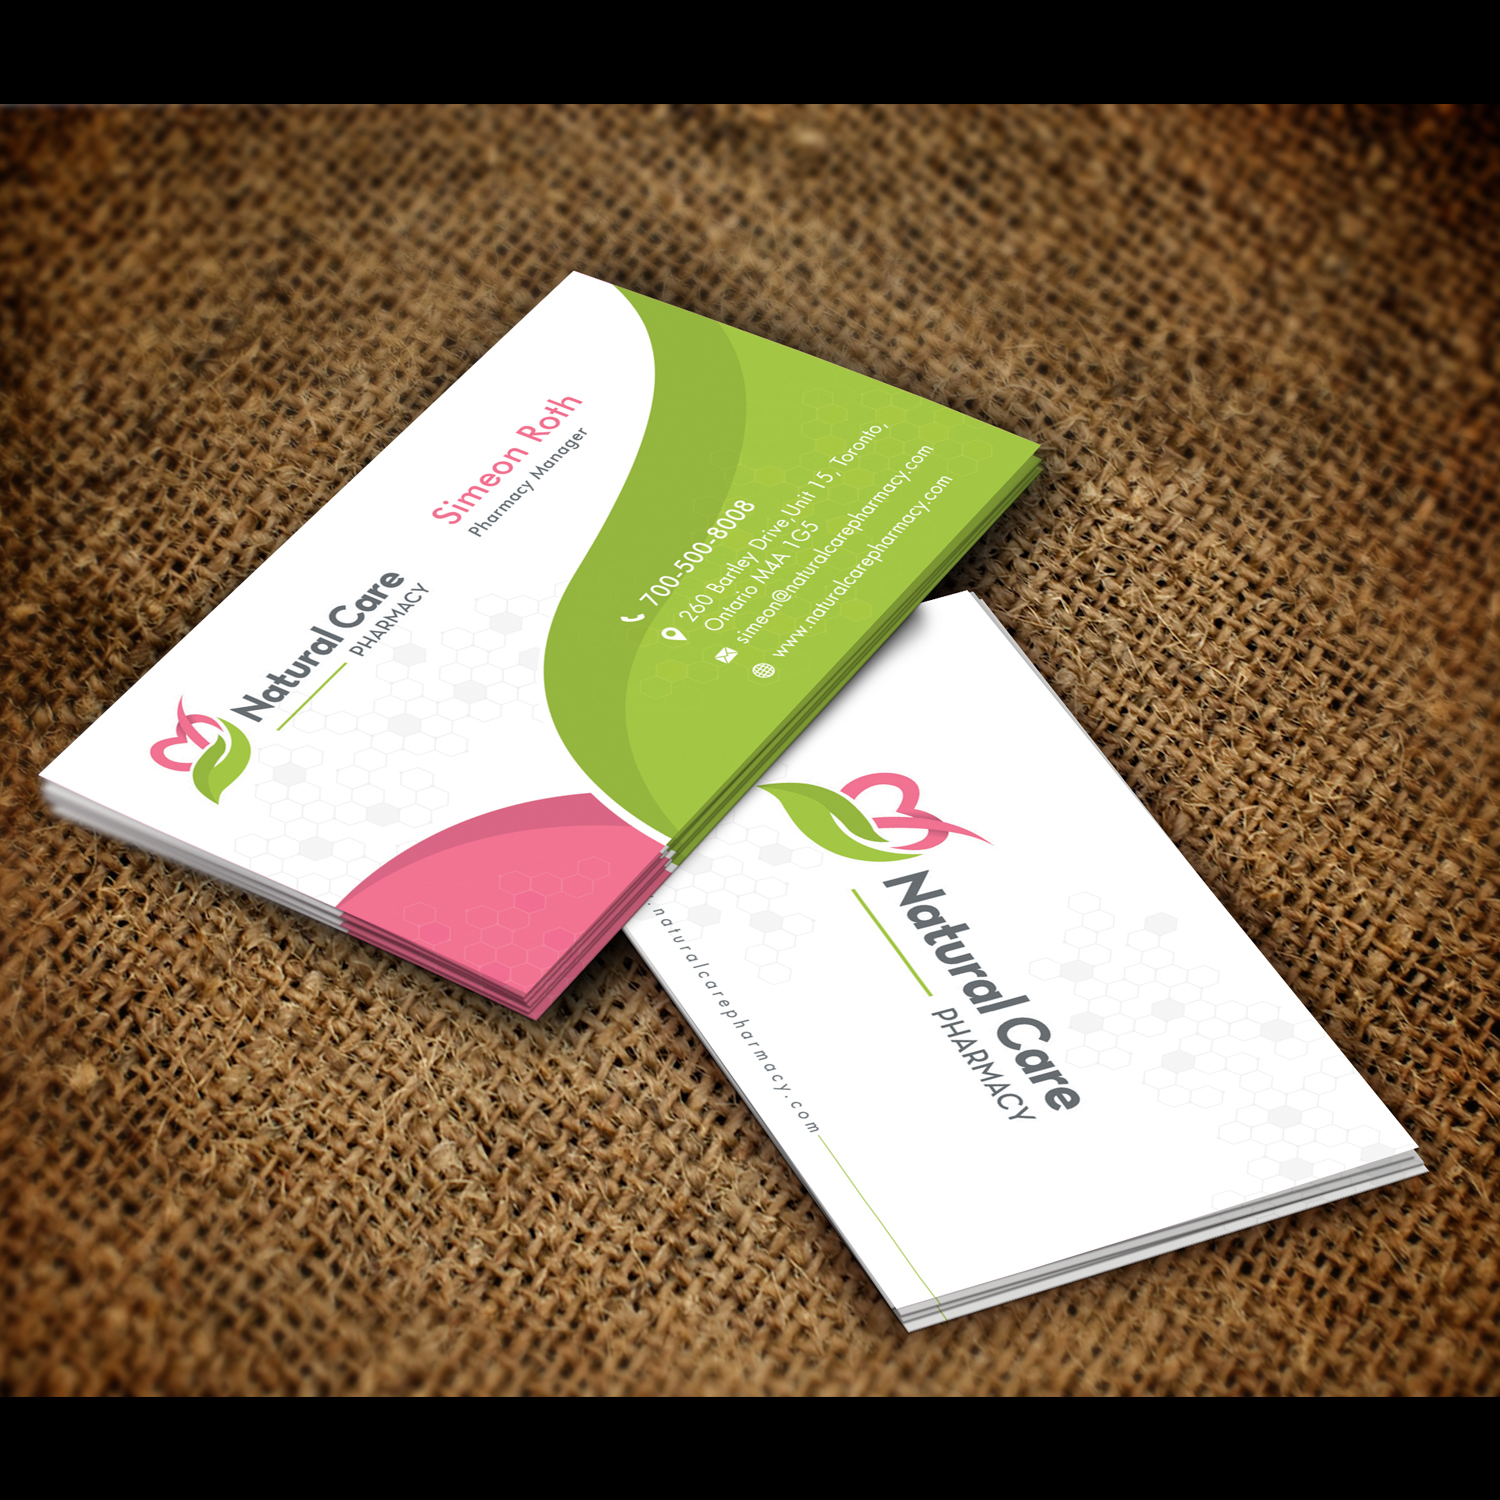 Elegant Playful Pharmacy Business Card Design For A Company By